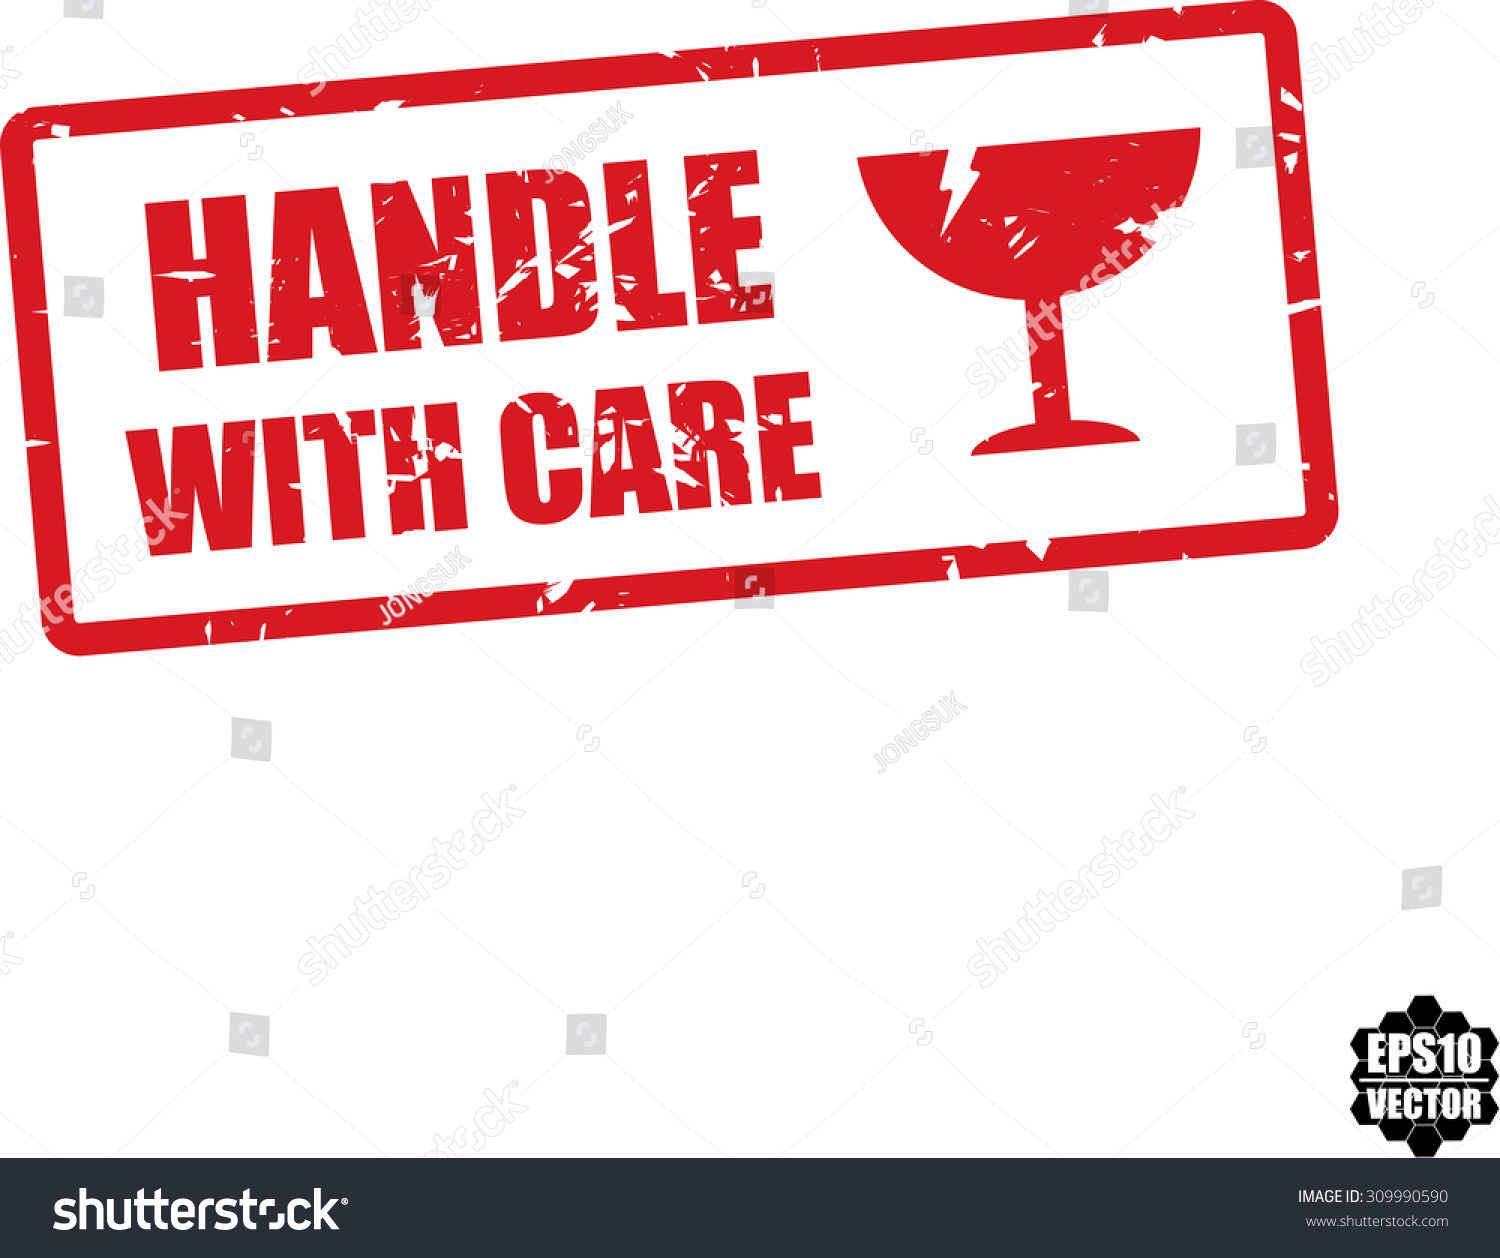 Handle With Care Rubber Stamp On White Background With Red Glass Icon. Vector Illustration. - 309990590 : Shutterstock